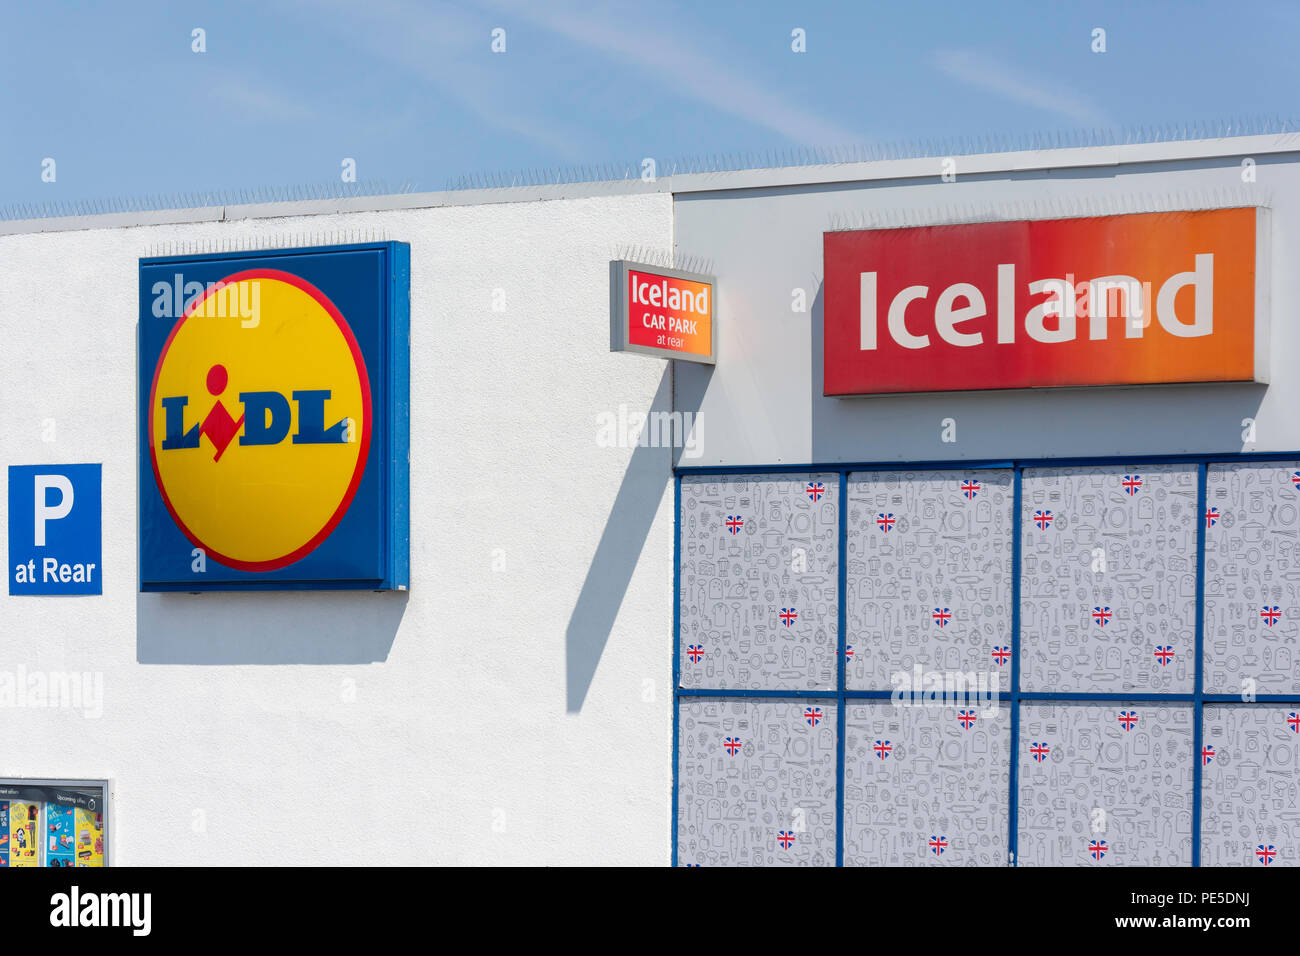 Lidl and Iceland supermarket signs, Heathway, Dagenham, London Borough of Barking and Dagenham, Greater London, England, United Kingdom - Stock Image